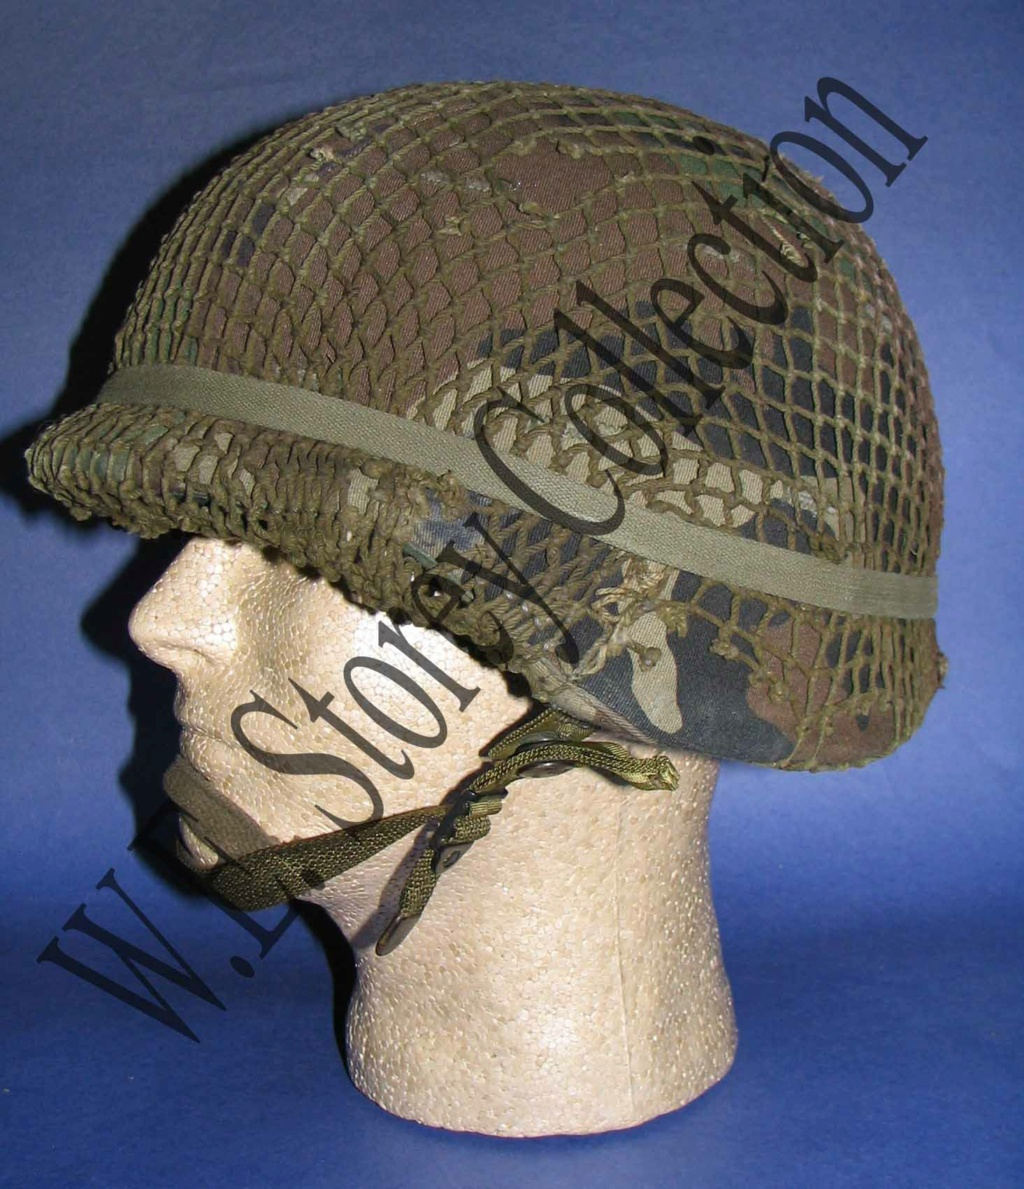 Canadian M1 Two-Tone Netting [QUESTION] Pasgt_10